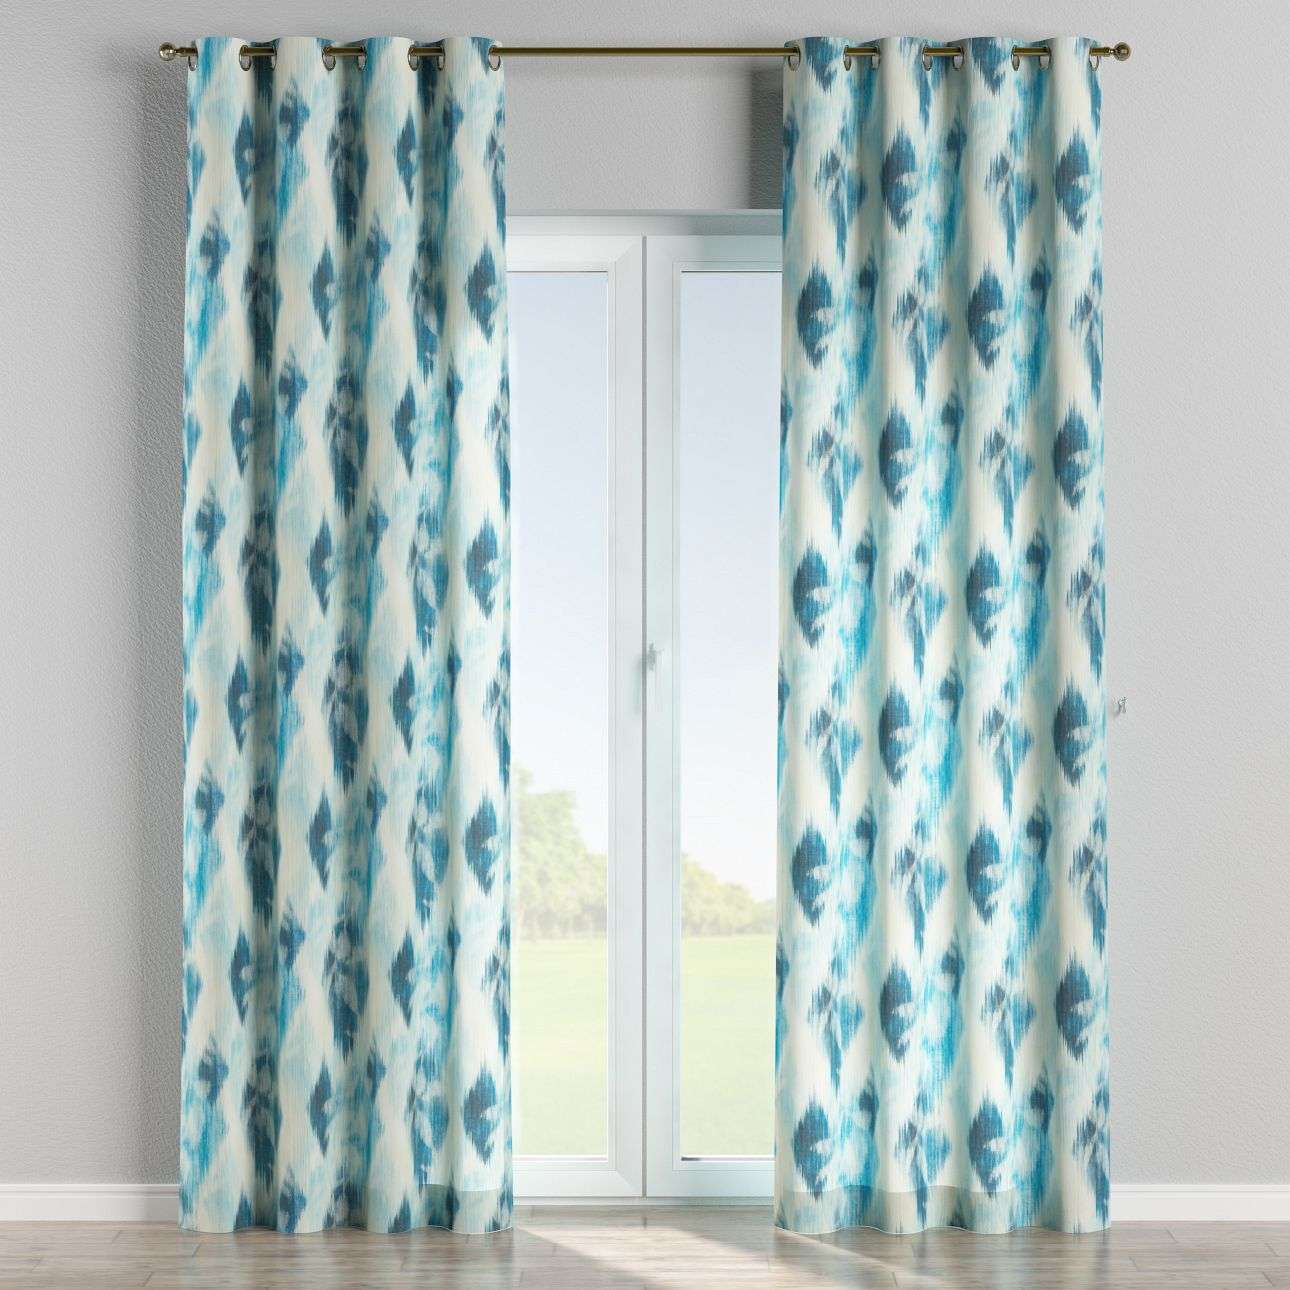 Eyelet curtains 130 x 260 cm (51 x 102 inch) in collection Aquarelle, fabric: 140-71